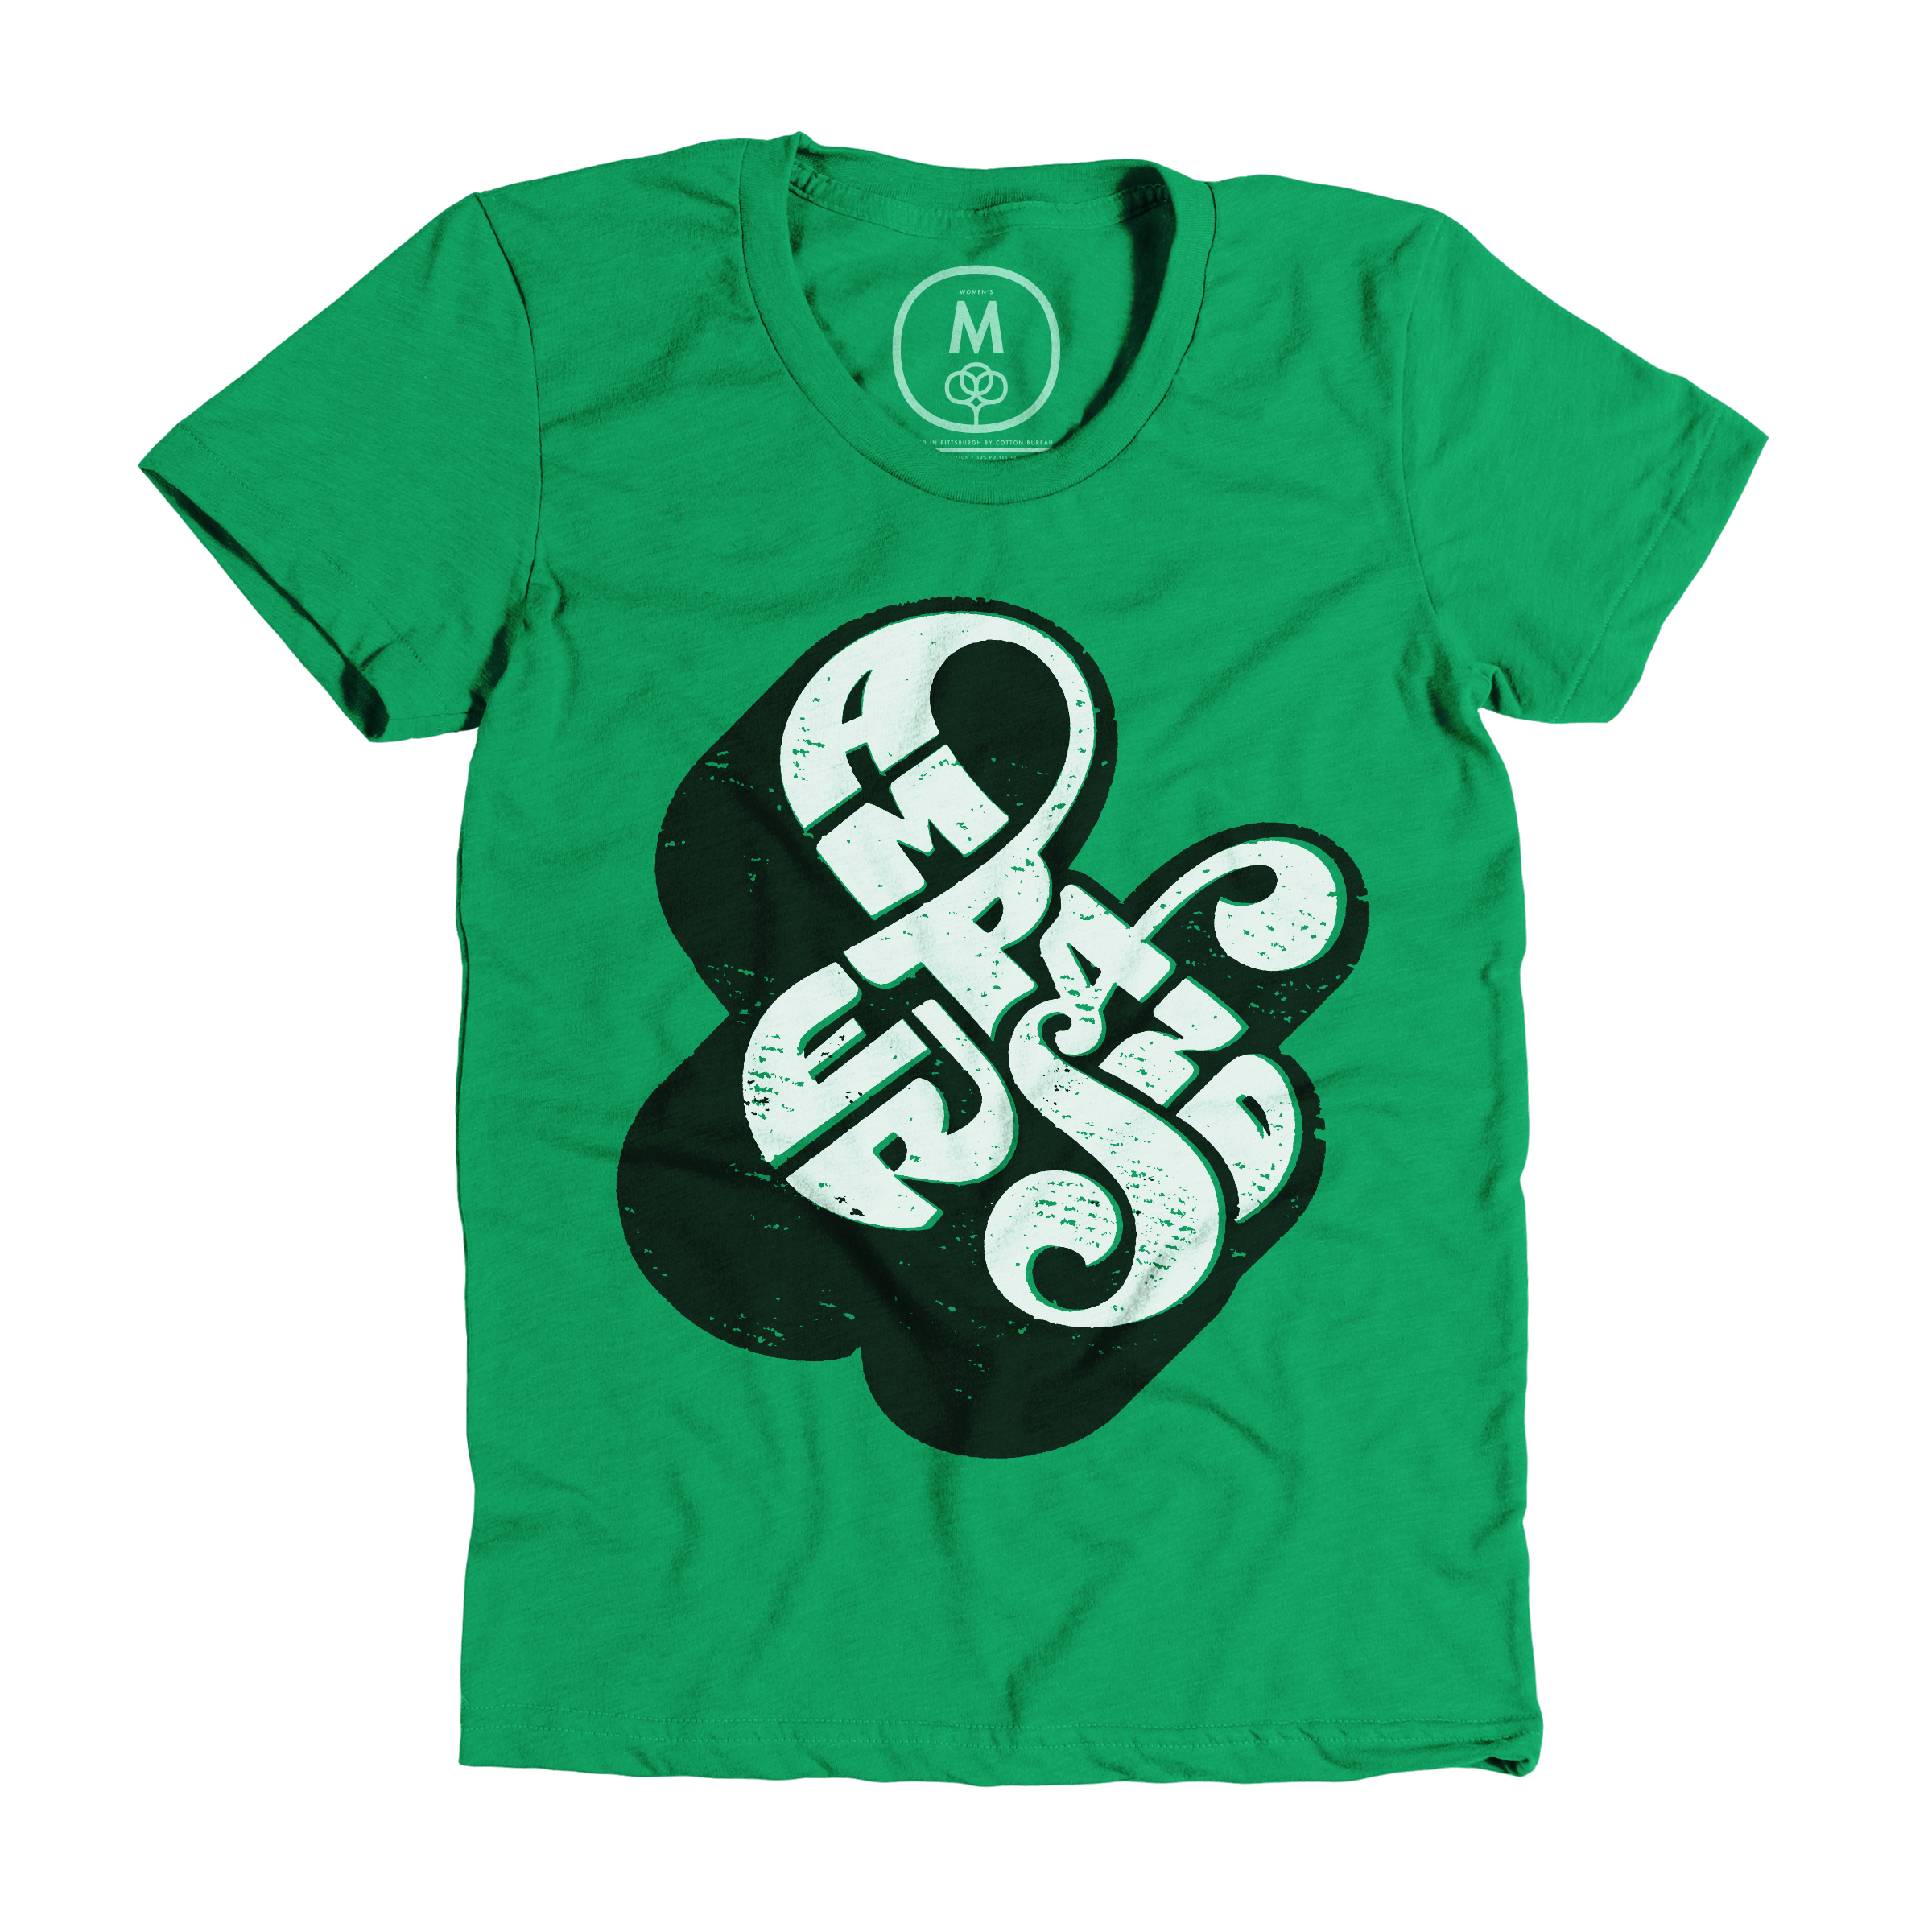 Self-Referential Ampersand Kelly Green (Women's)